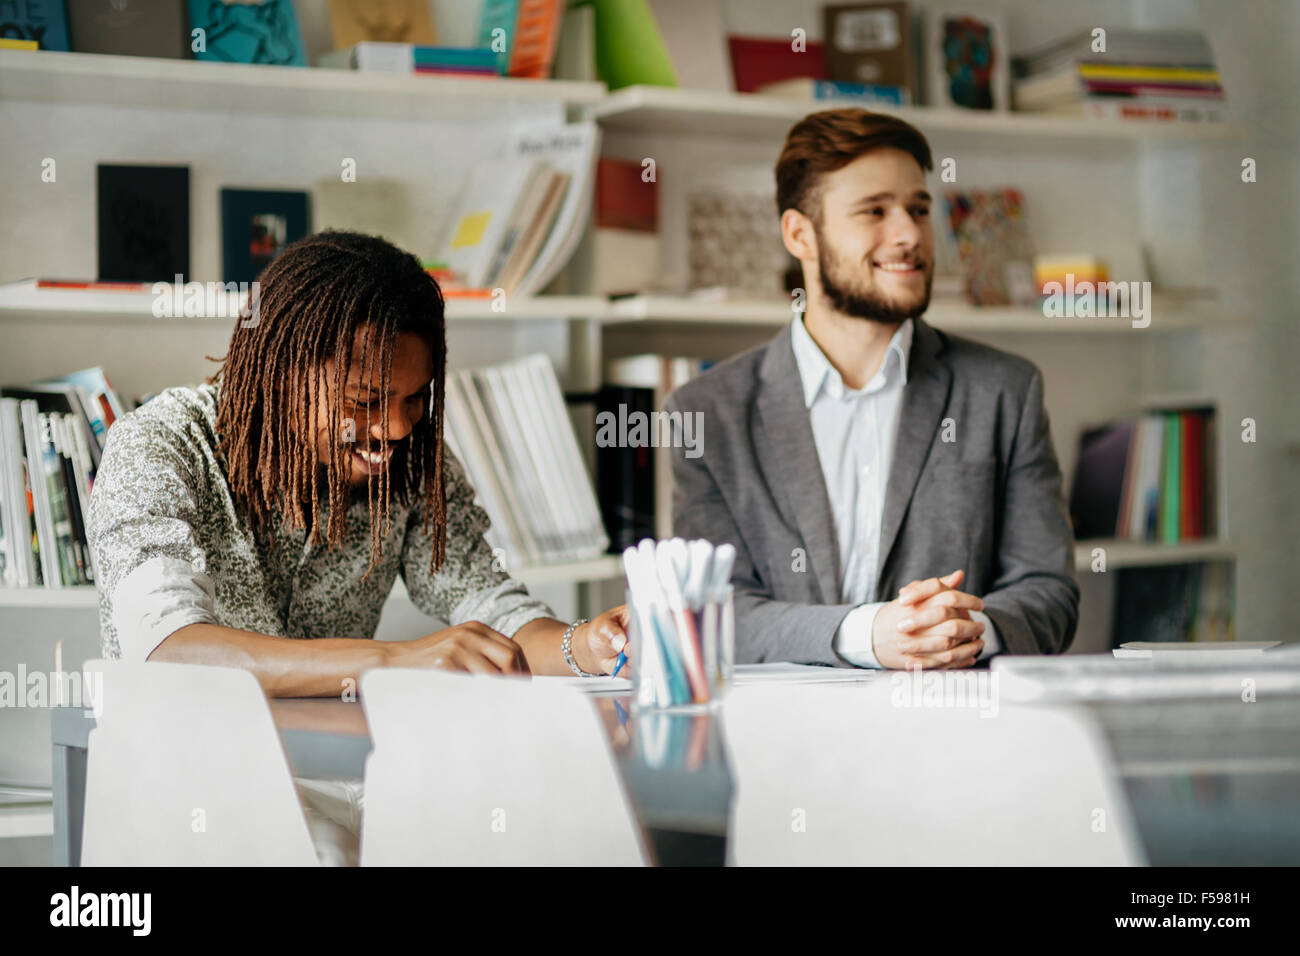 Students preparing for exams by studying in library - Stock Image